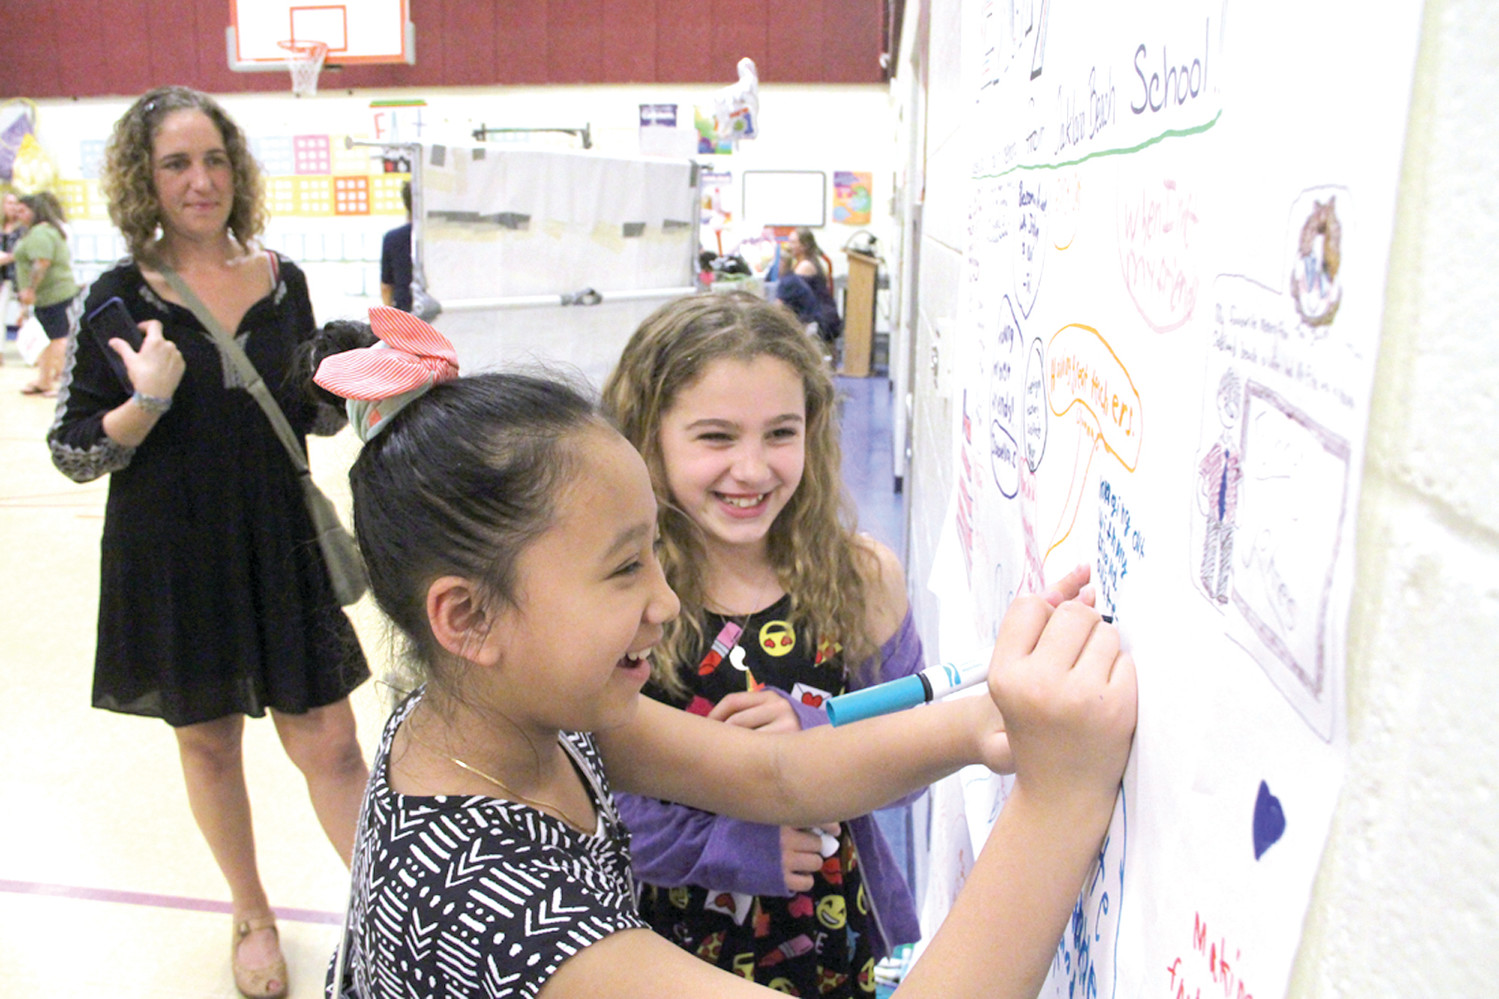 RECORDING MEMORIES: Third grade friends Kamilah Wosczyna and Jayleen Mony were thrilled to write on the memory wall.